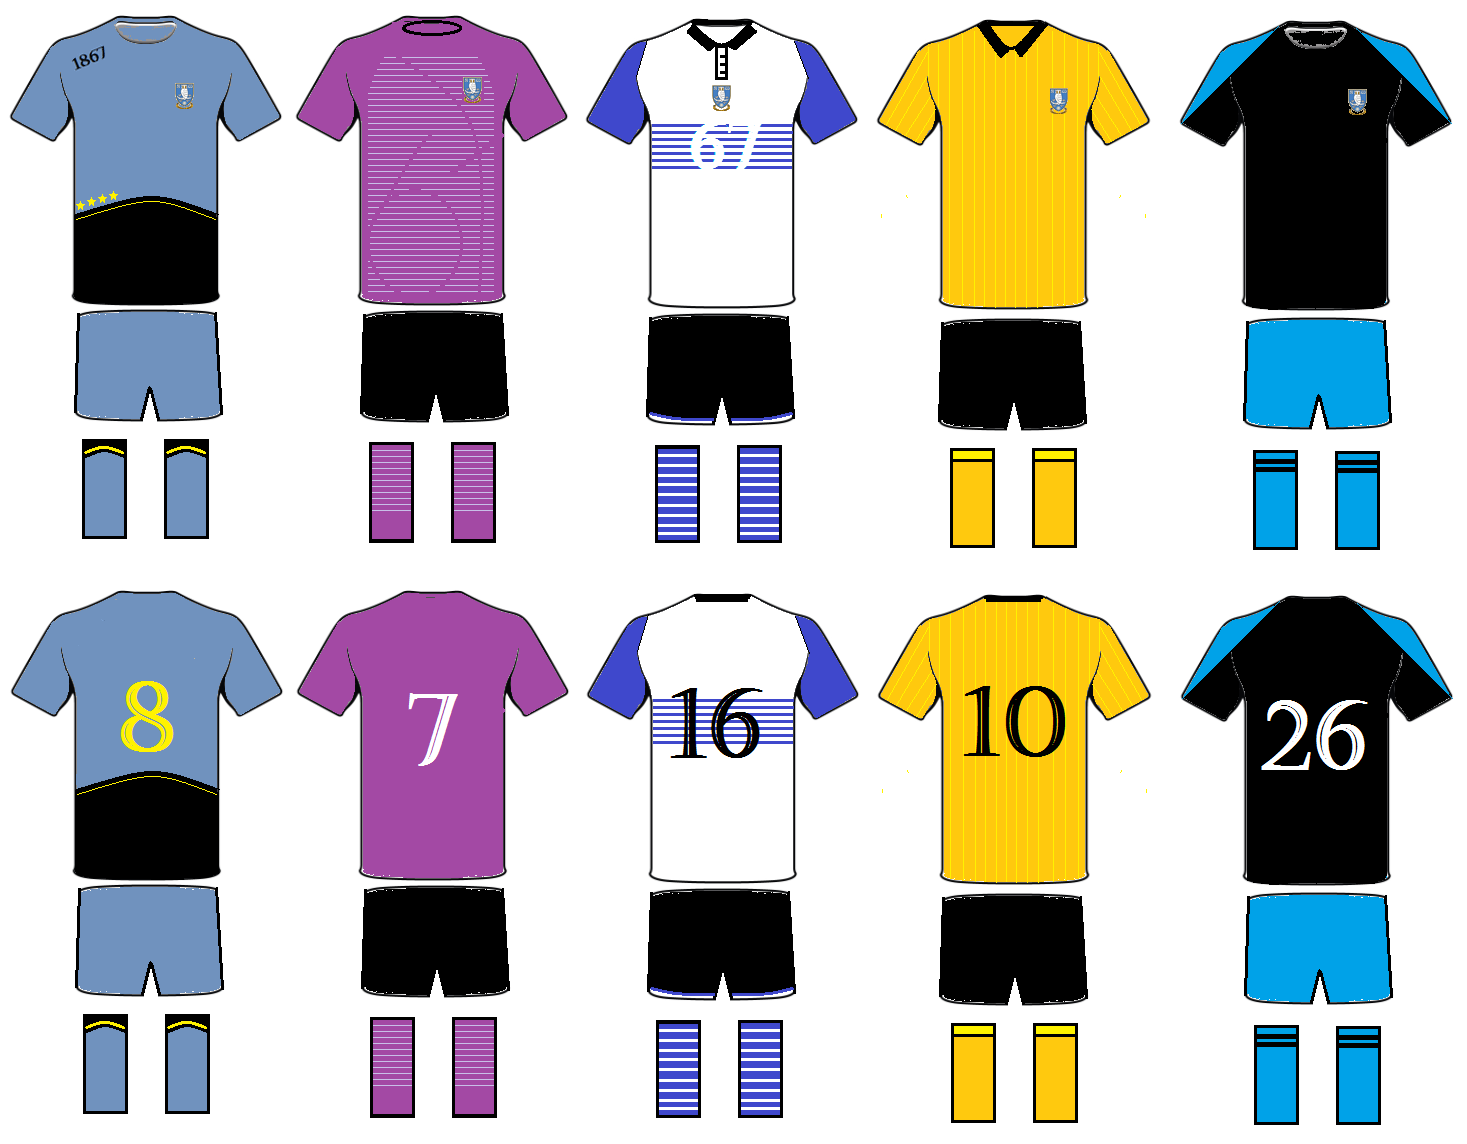 Design the 150th (3rd Strip) Shirt.